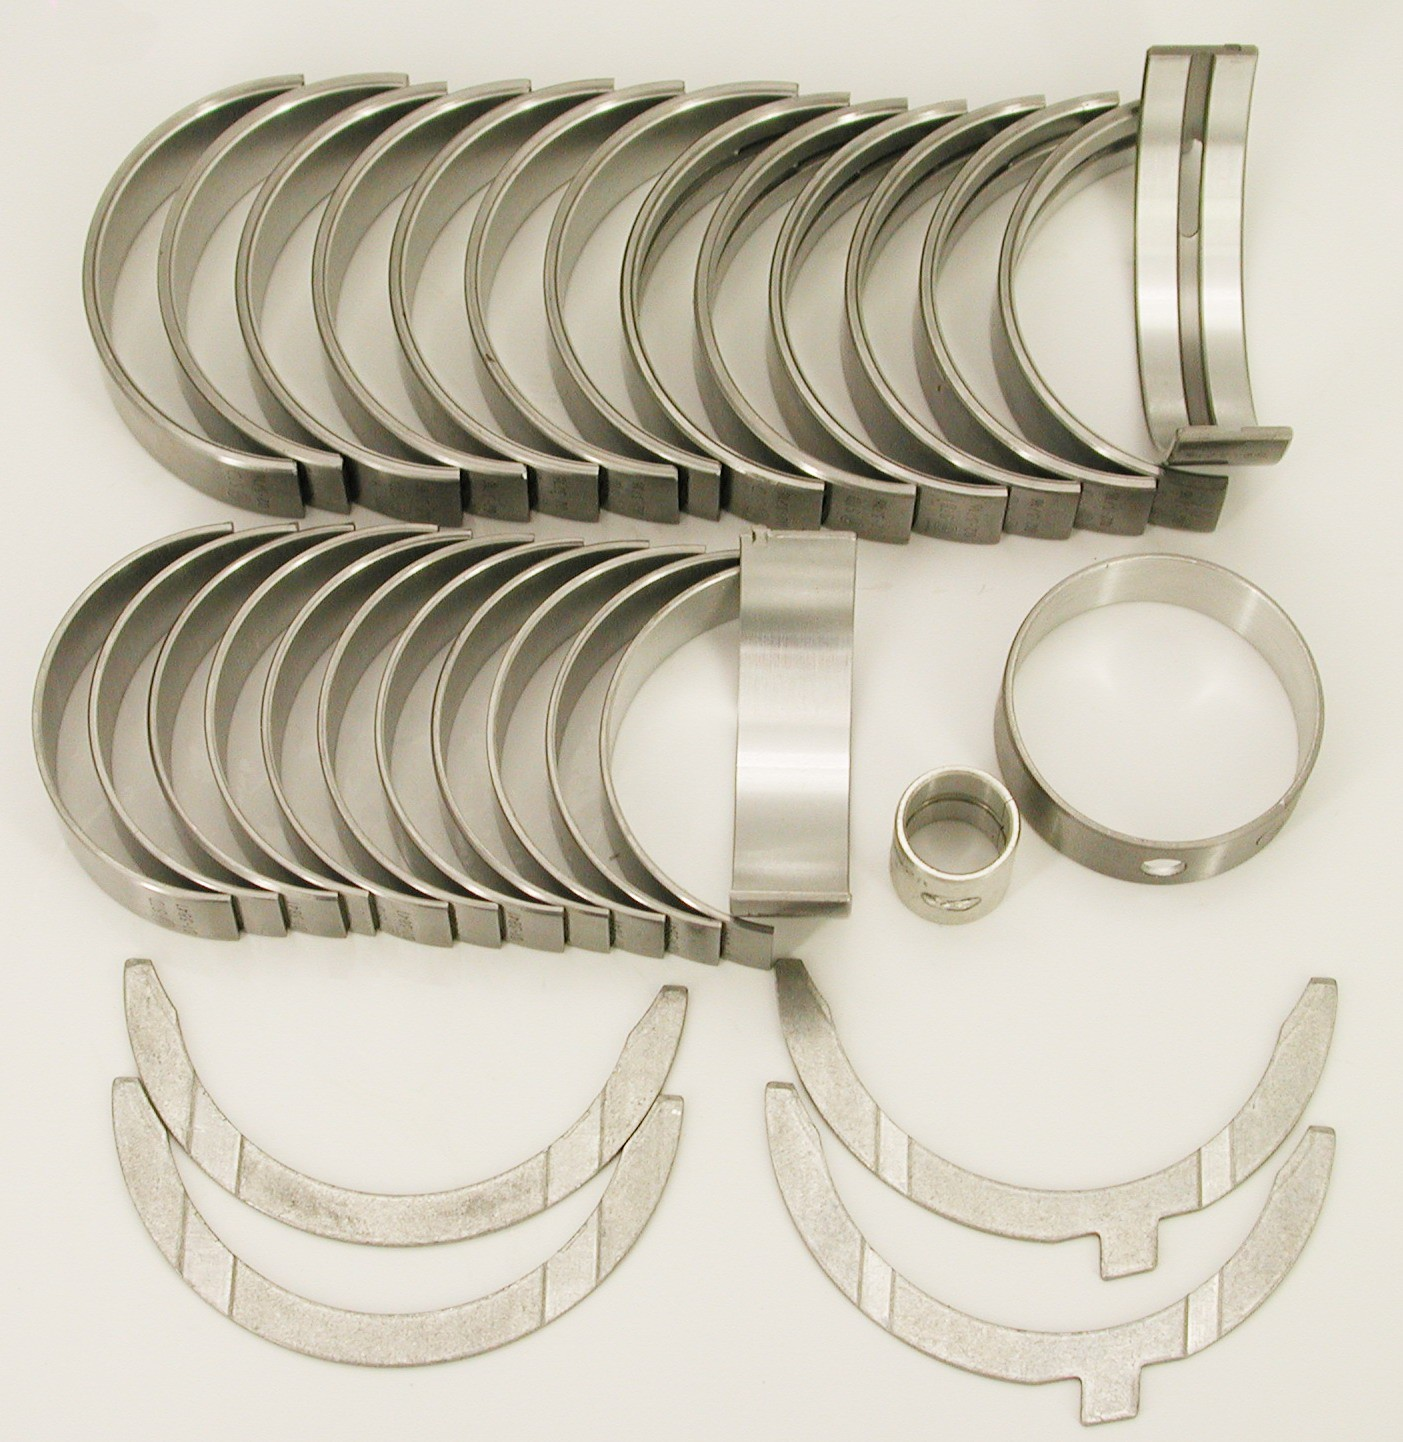 VR6 Engine Bearing Set